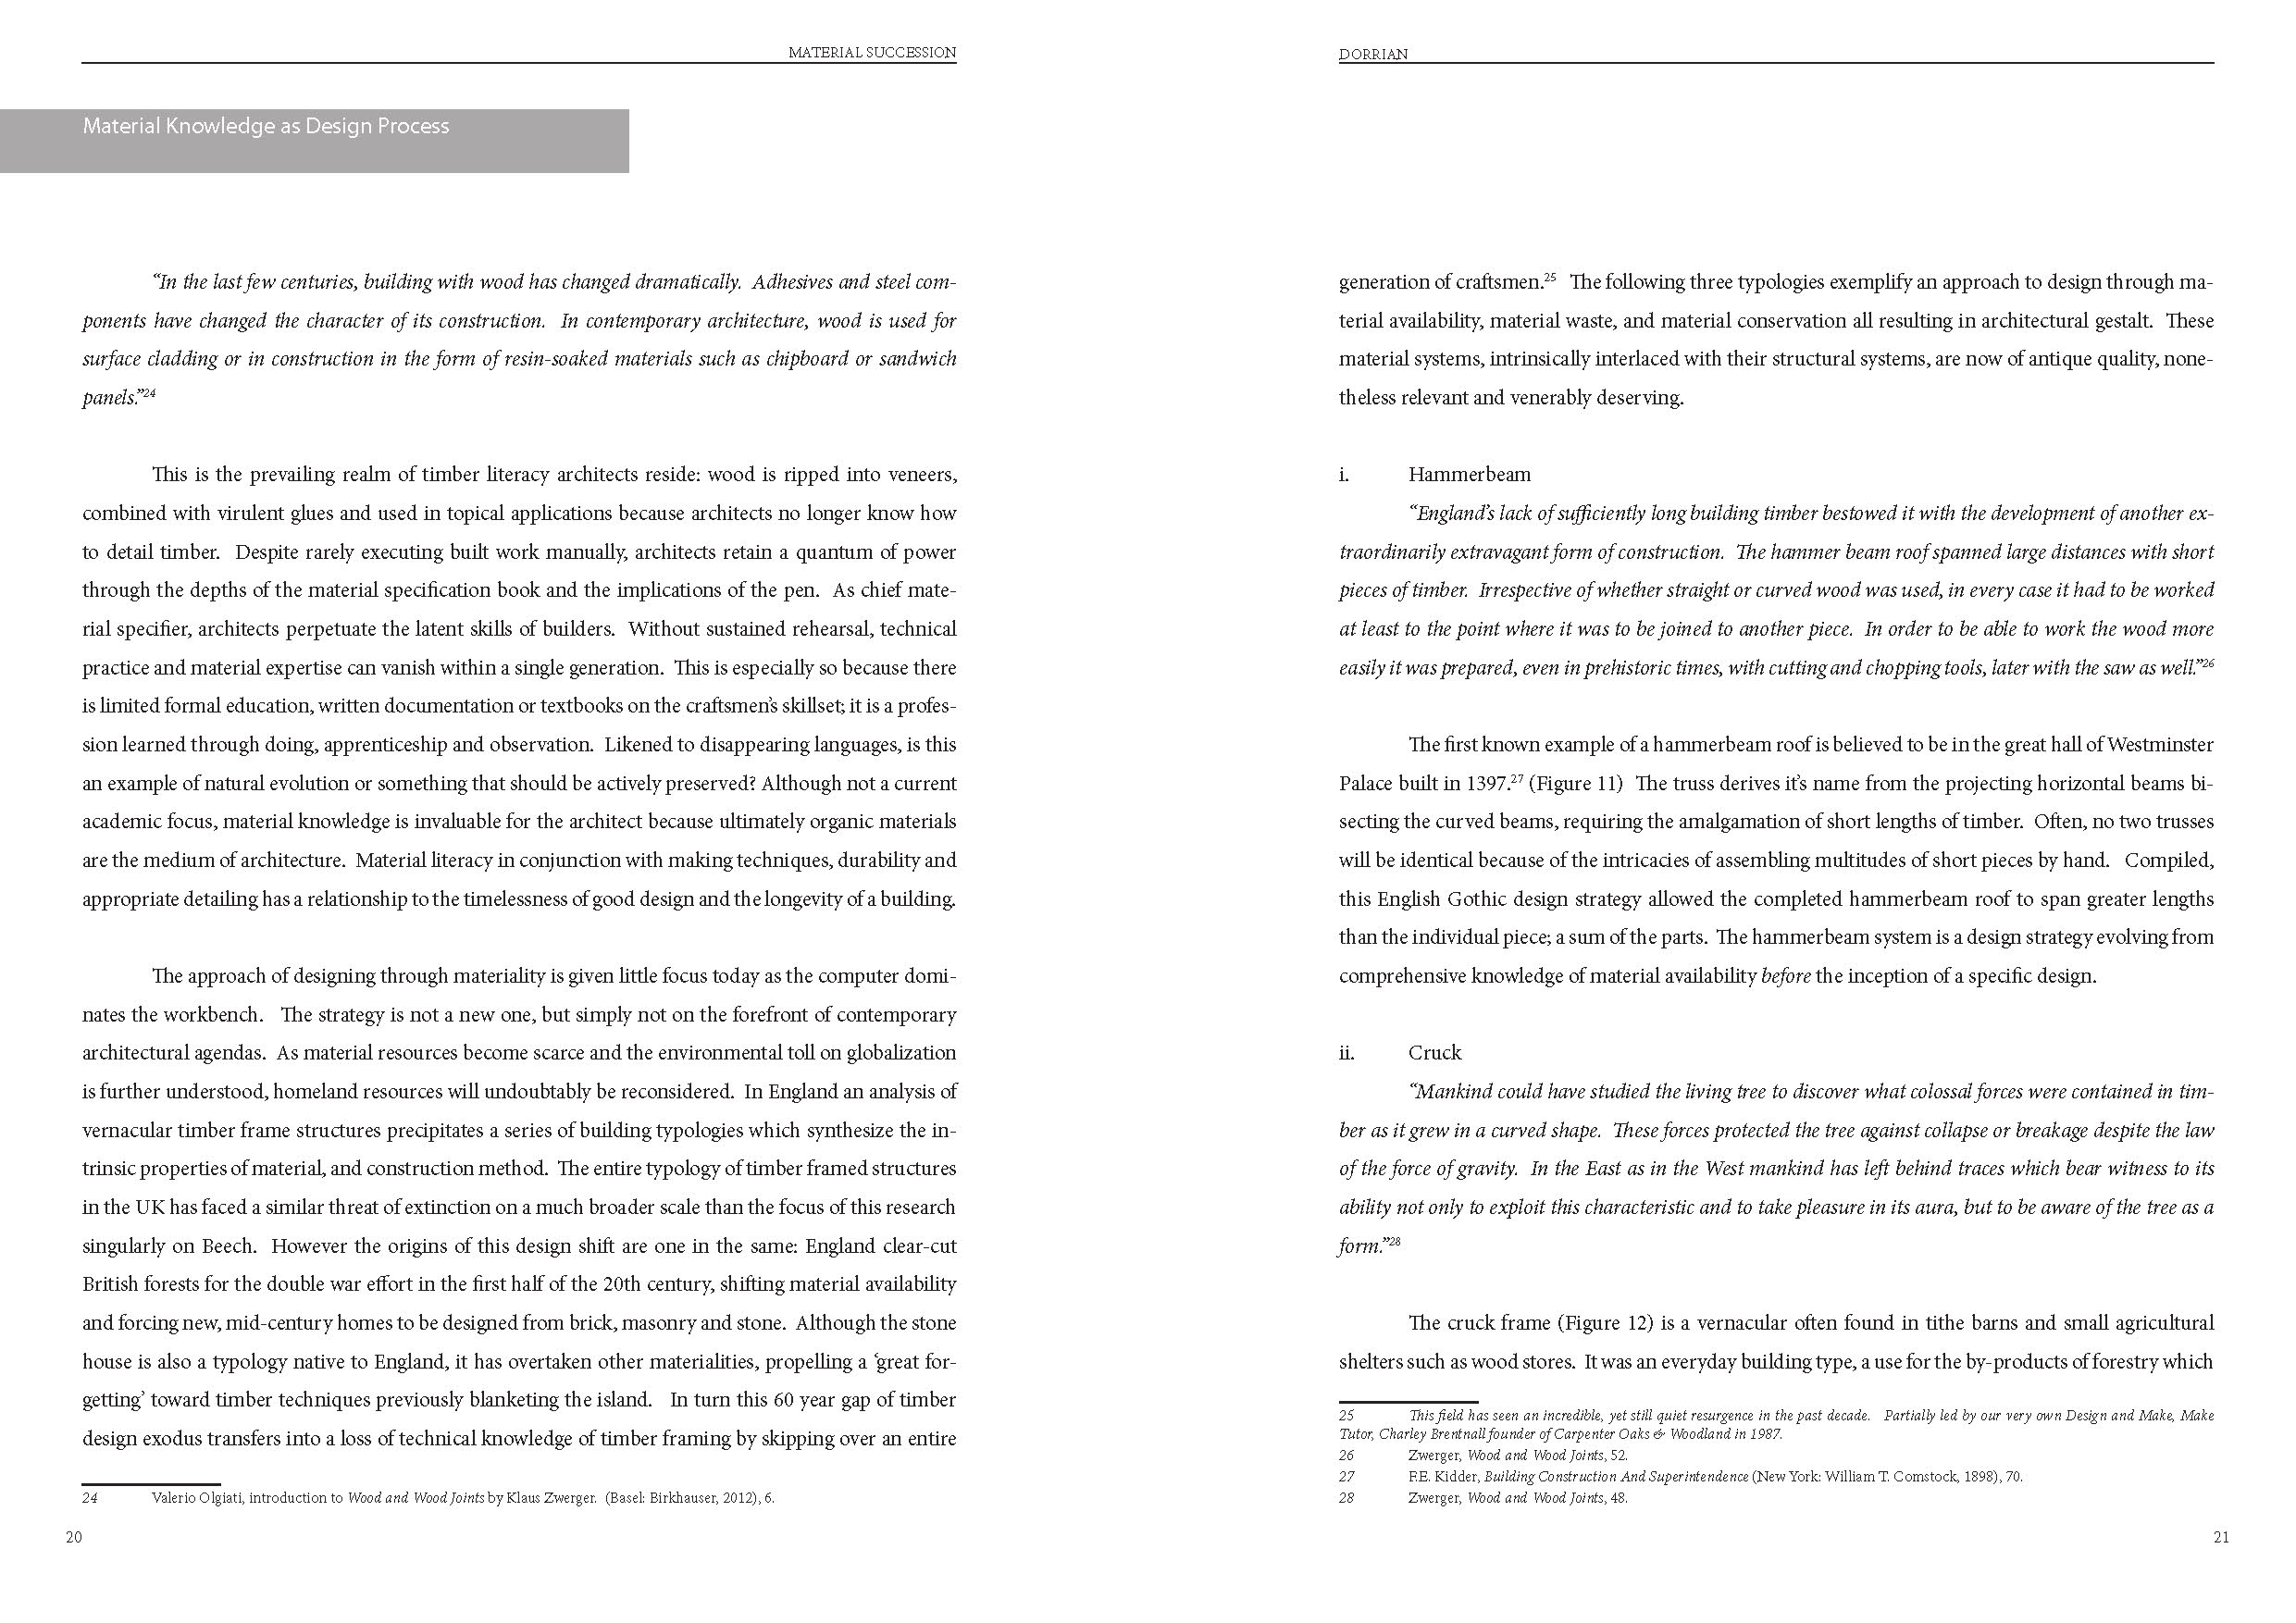 130131_Material SuccessionFORSUBMITTAL_Page_15.jpg